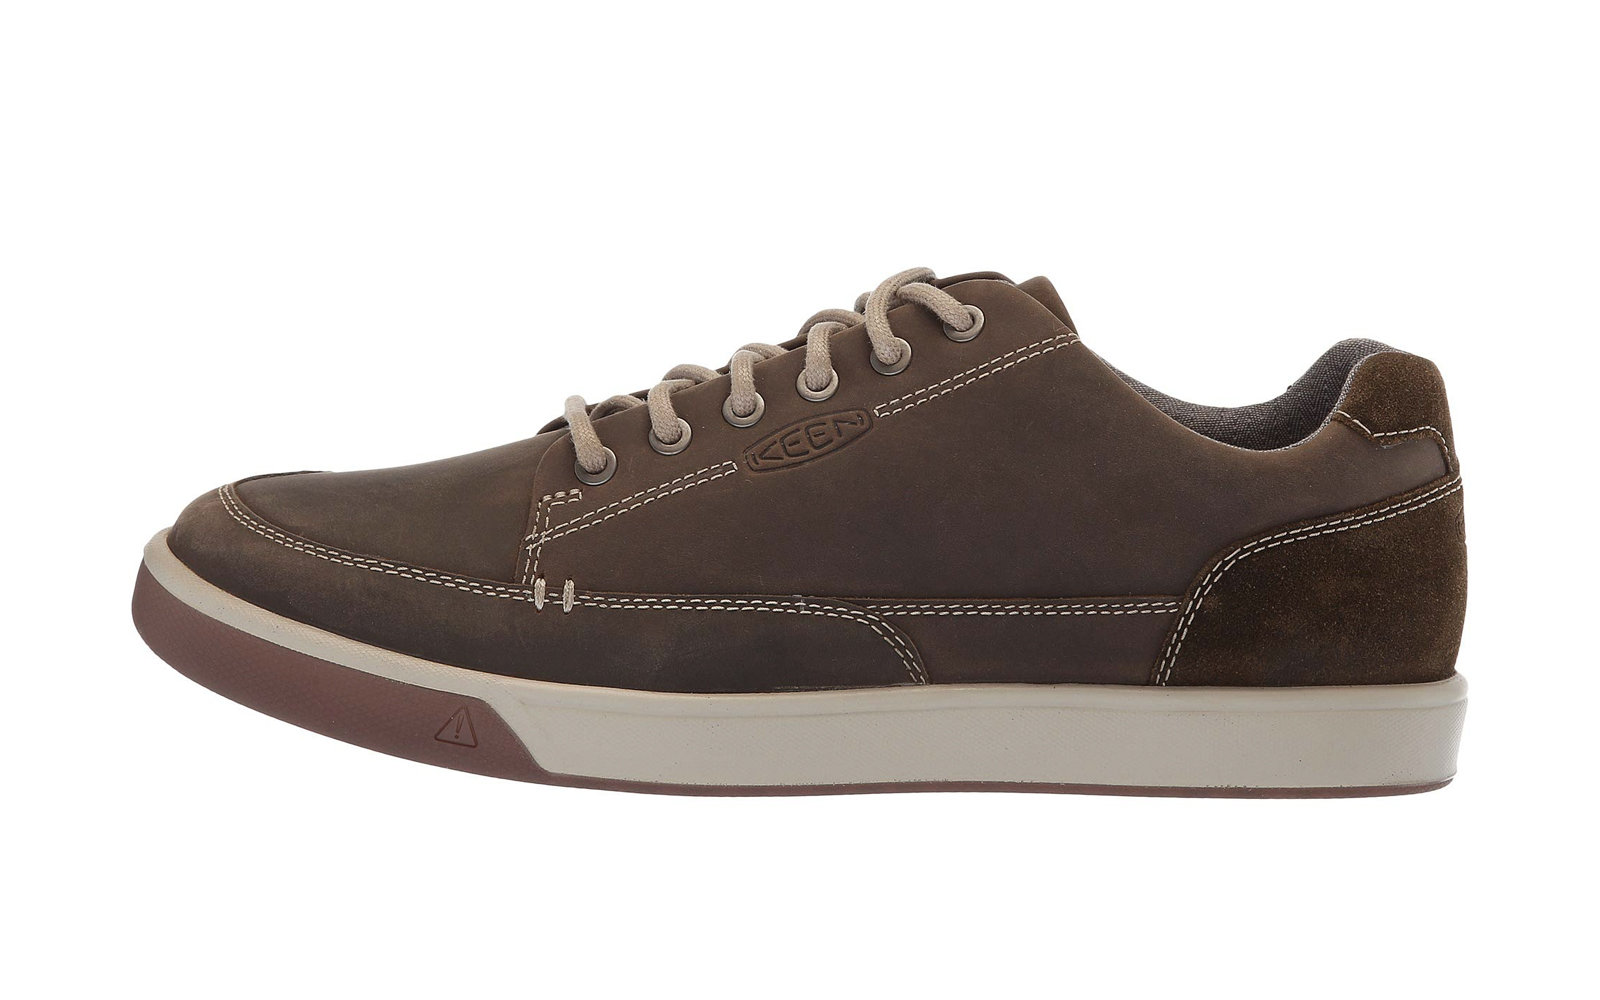 The Most Comfortable Mens Walking Shoes for Travel